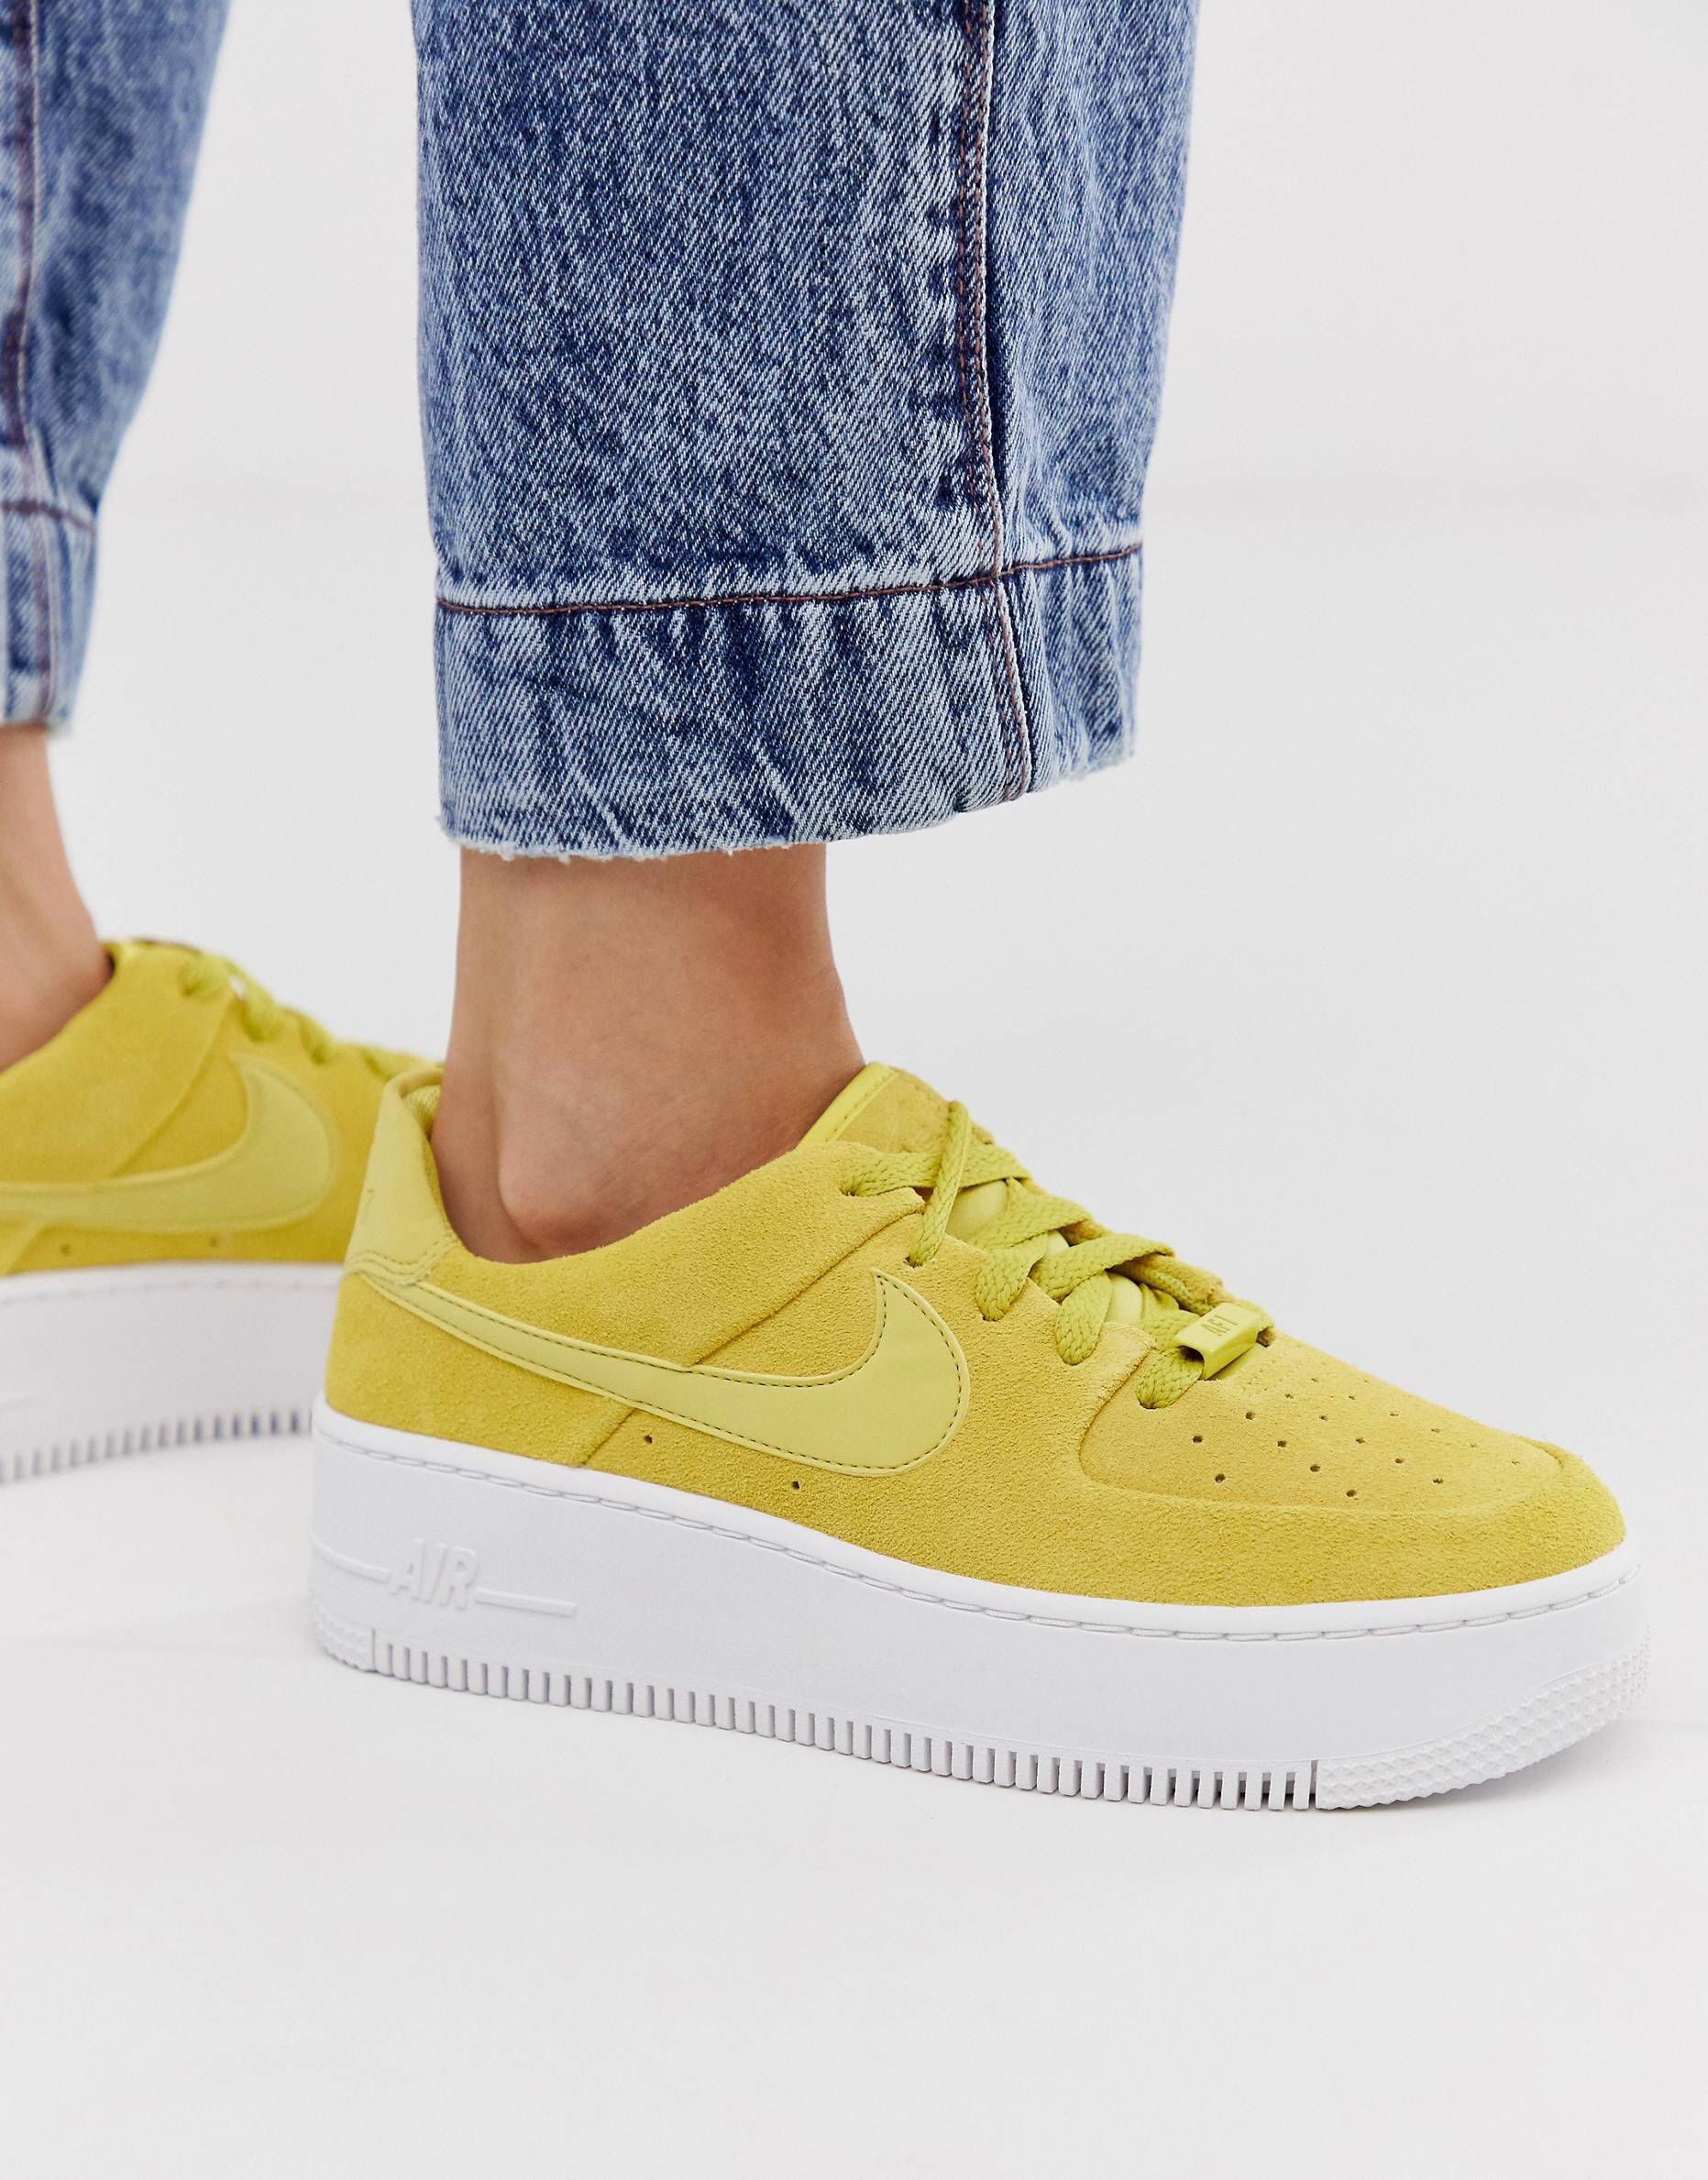 Nike Air Force 1 Sage Low 'Celery' Yellow For Sale